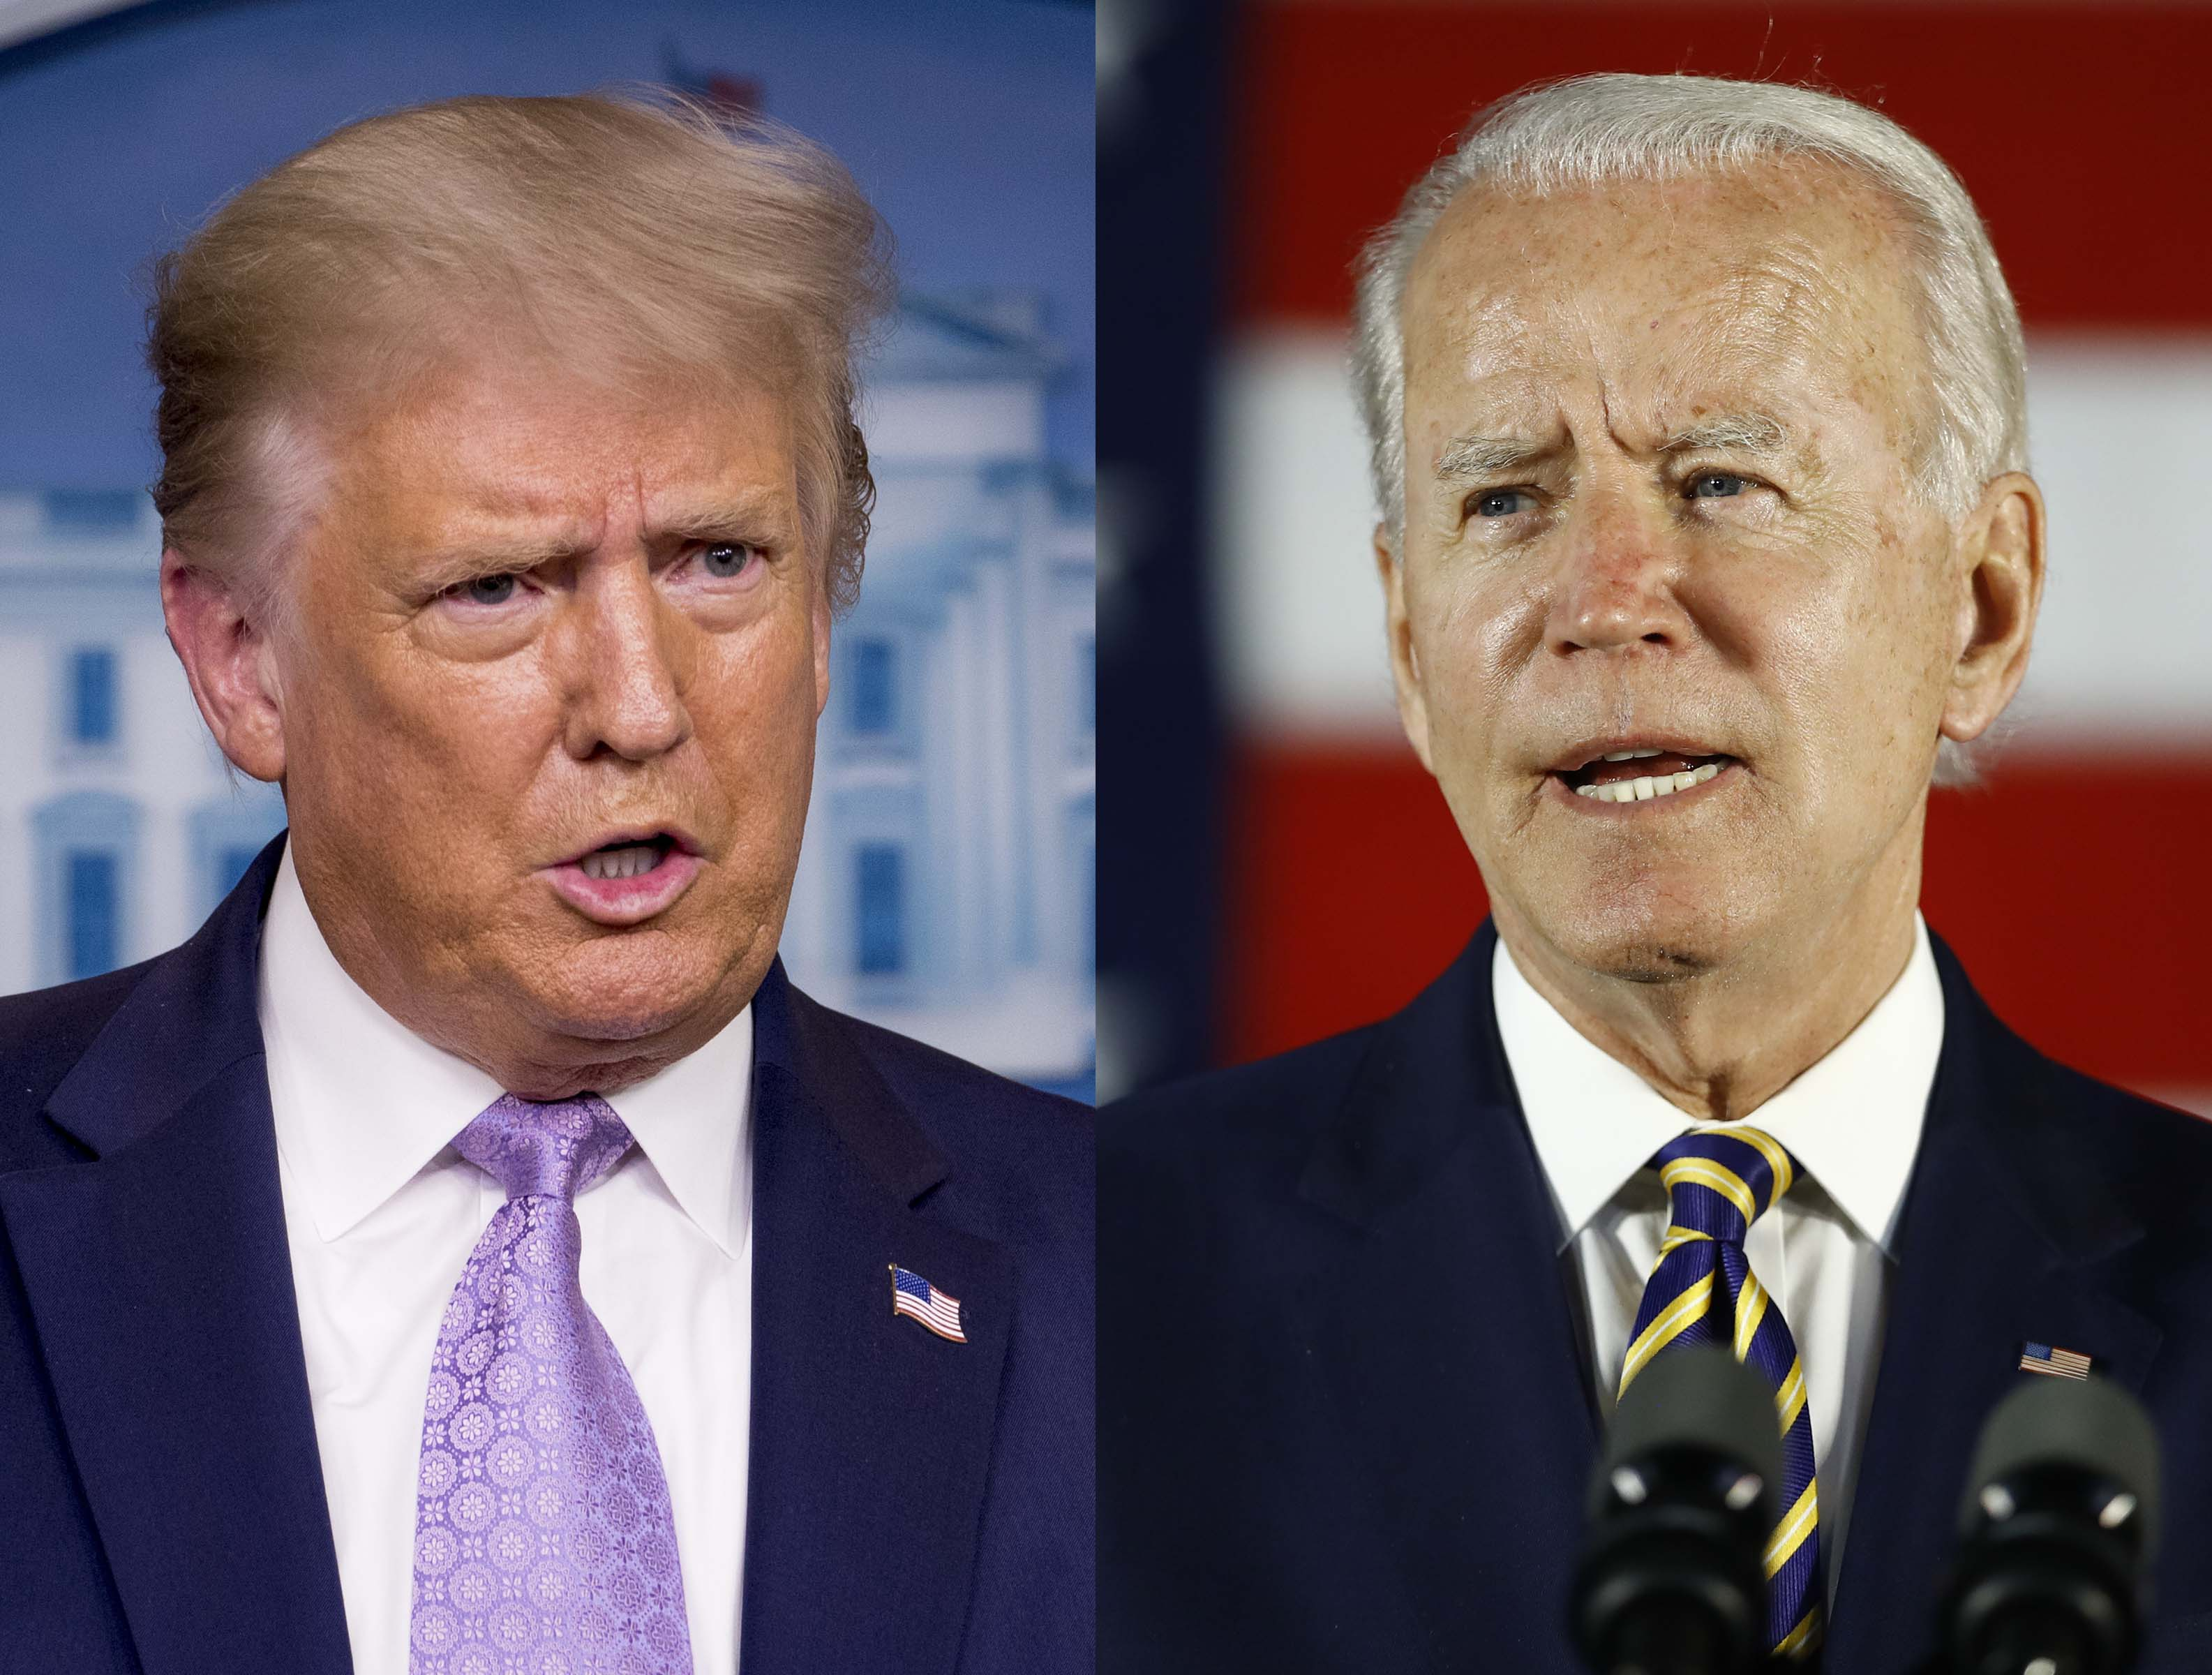 President Donald Trump and Democratic presidential nominee Joe Biden.